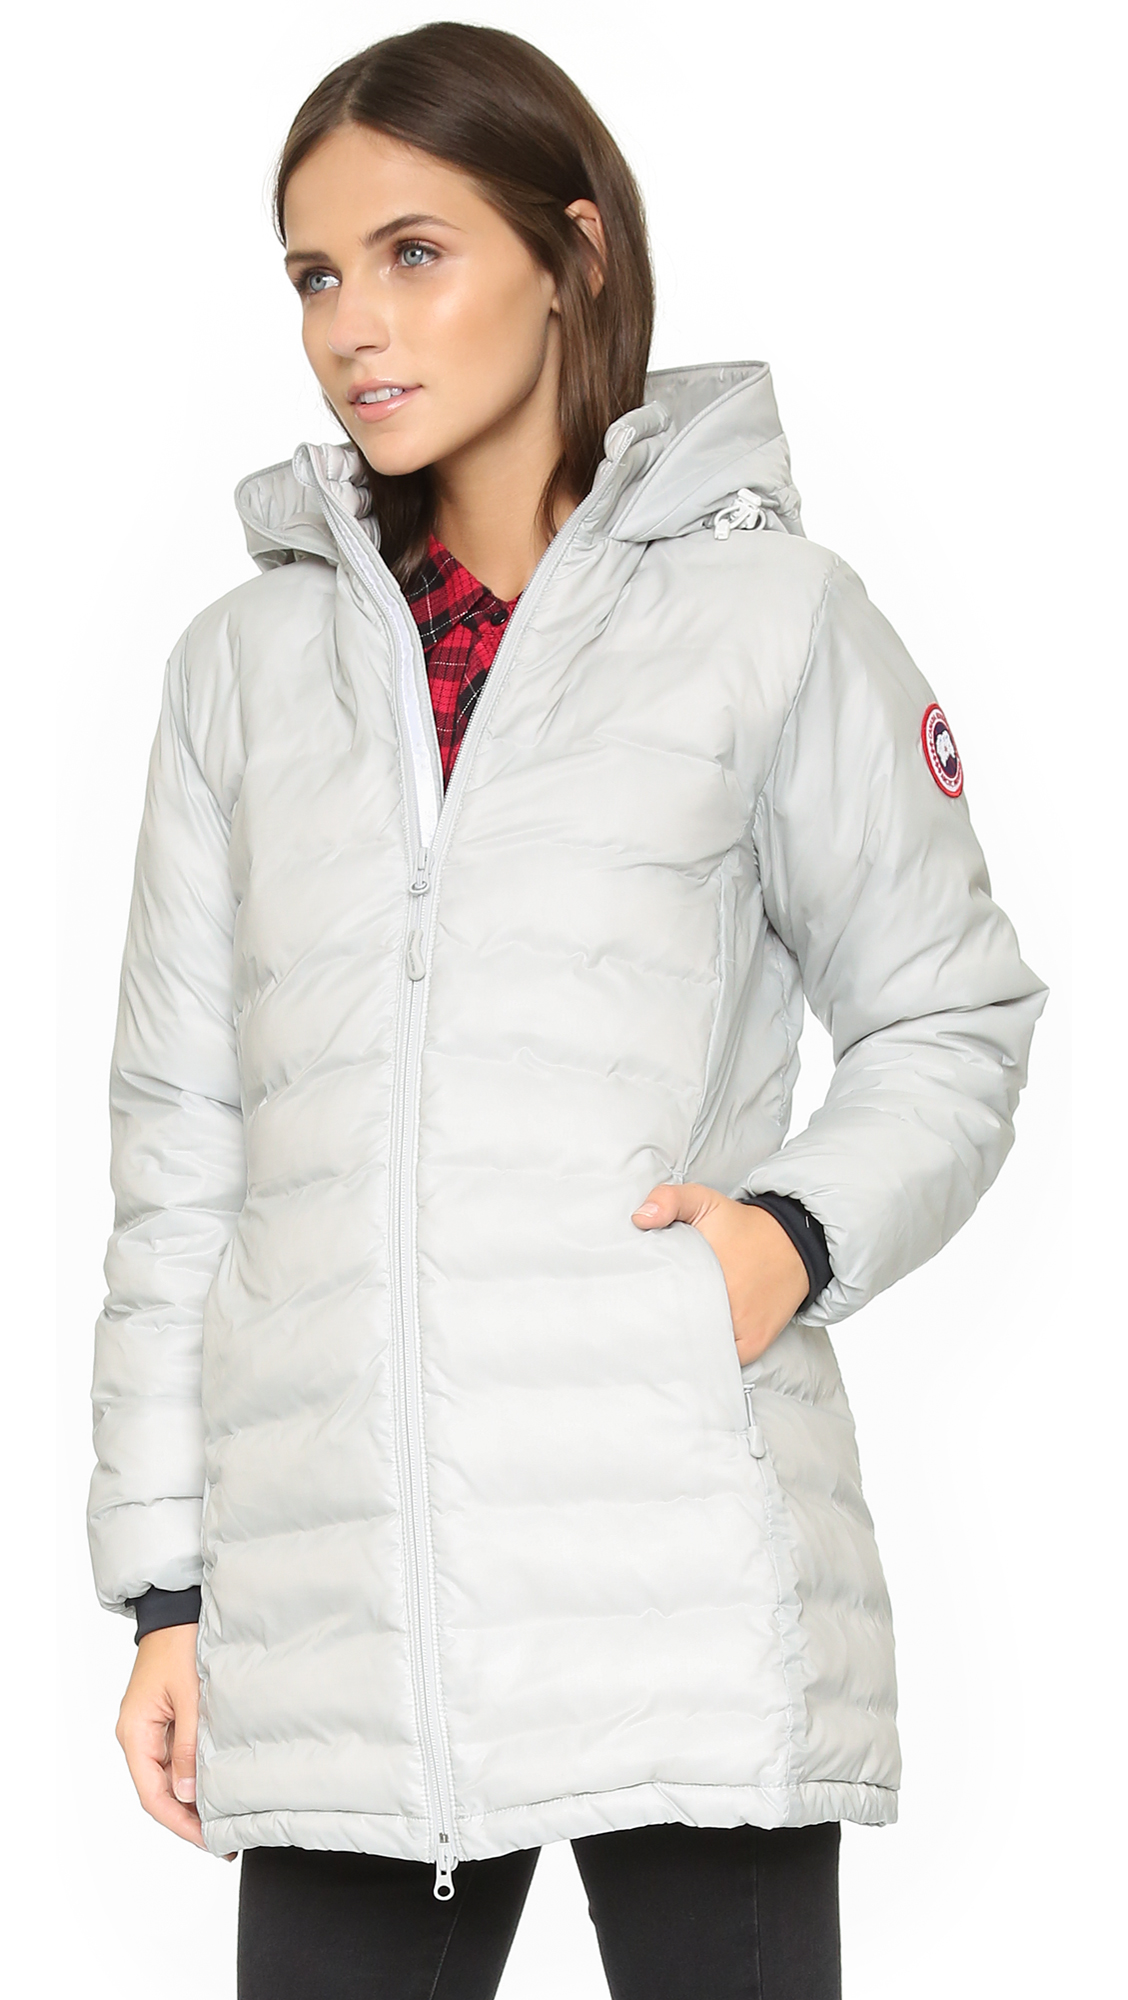 Canada Goose expedition parka outlet discounts - Canada Goose Camp Hooded Jacket | SHOPBOP